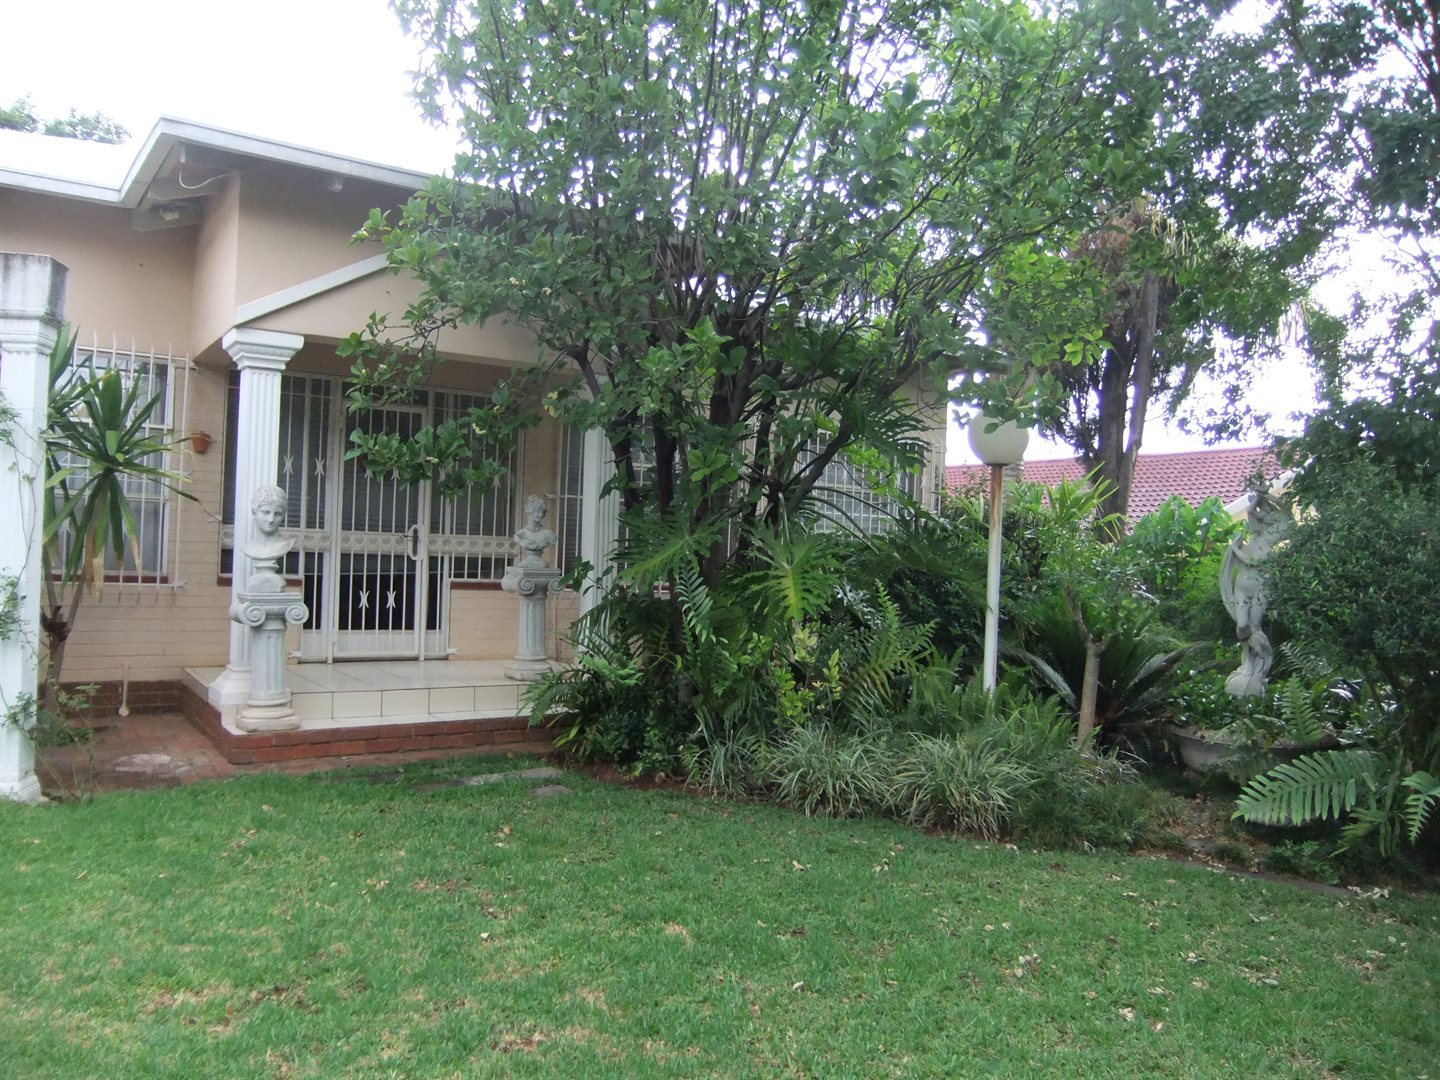 Pretoria, Wonderboom South Property  | Houses For Sale Wonderboom South, Wonderboom South, House 3 bedrooms property for sale Price:2,500,000